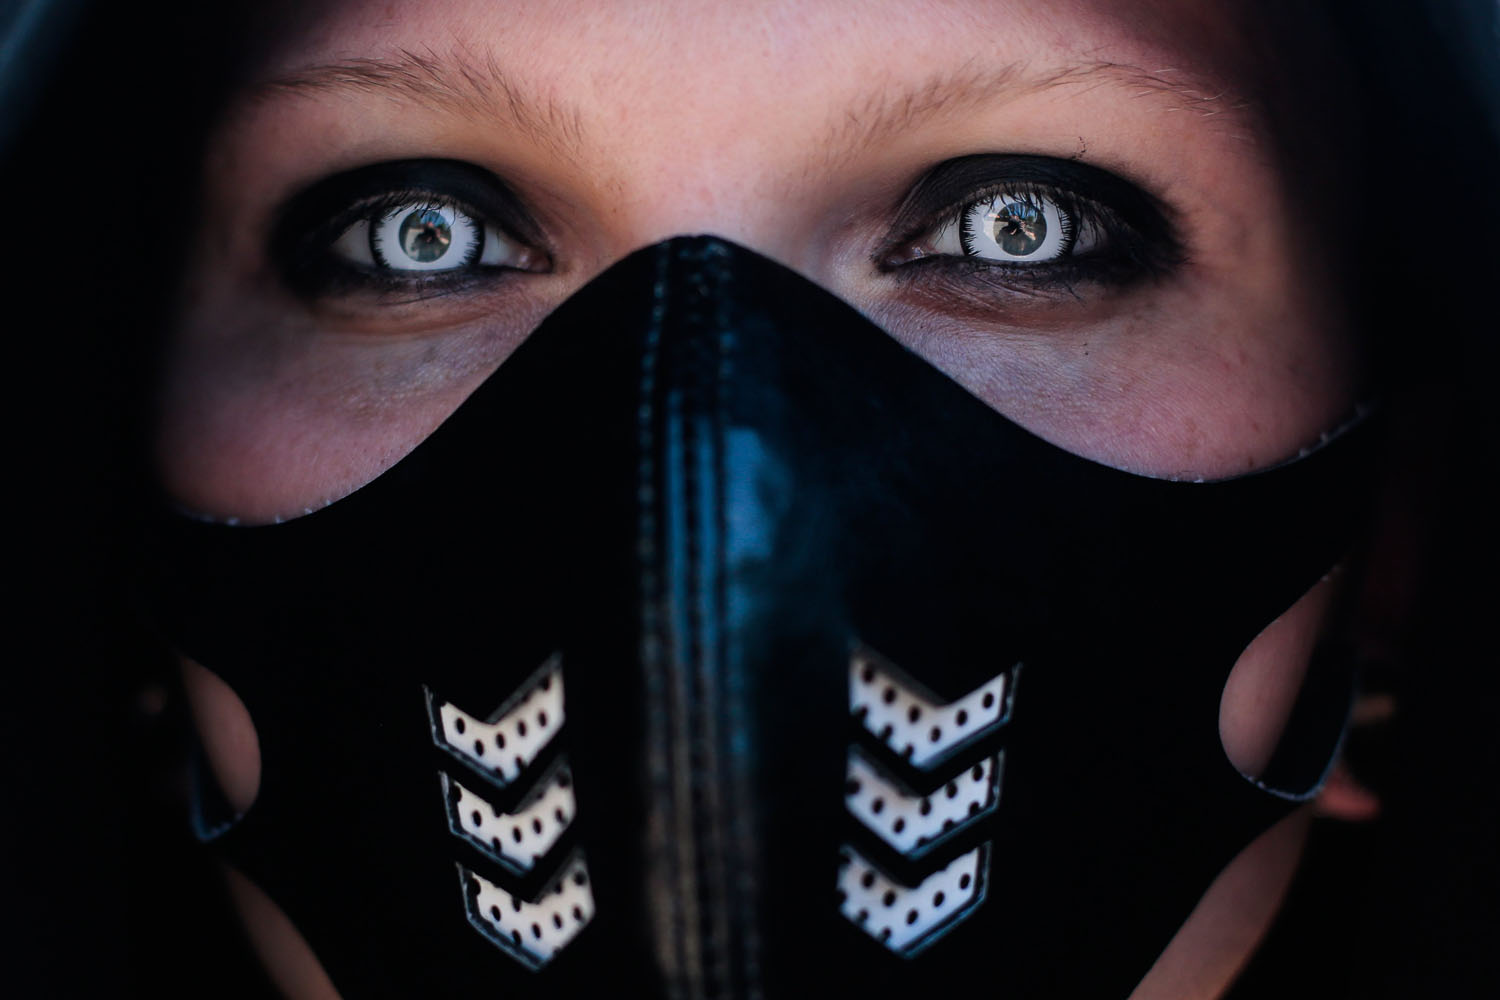 Jun. 6, 2014. A participant arrives at the Wave Gothic Festival in Leipzig, central Germany. About 20,000 members of  the Gothic scene from all over the world are expected to attend.